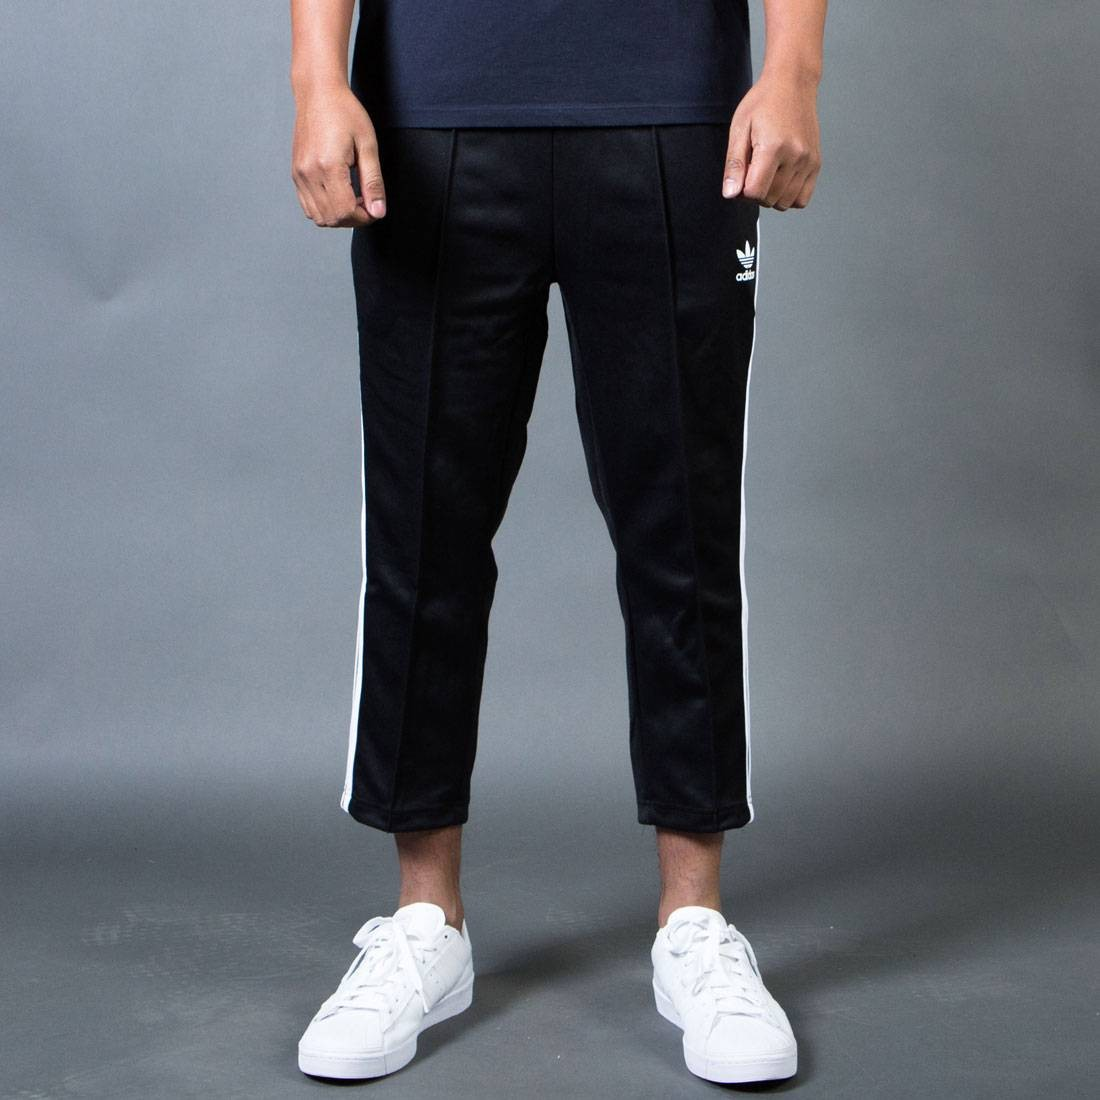 8397aeee7230 Adidas Men Superstar Relaxed Cropped Track Pants black white